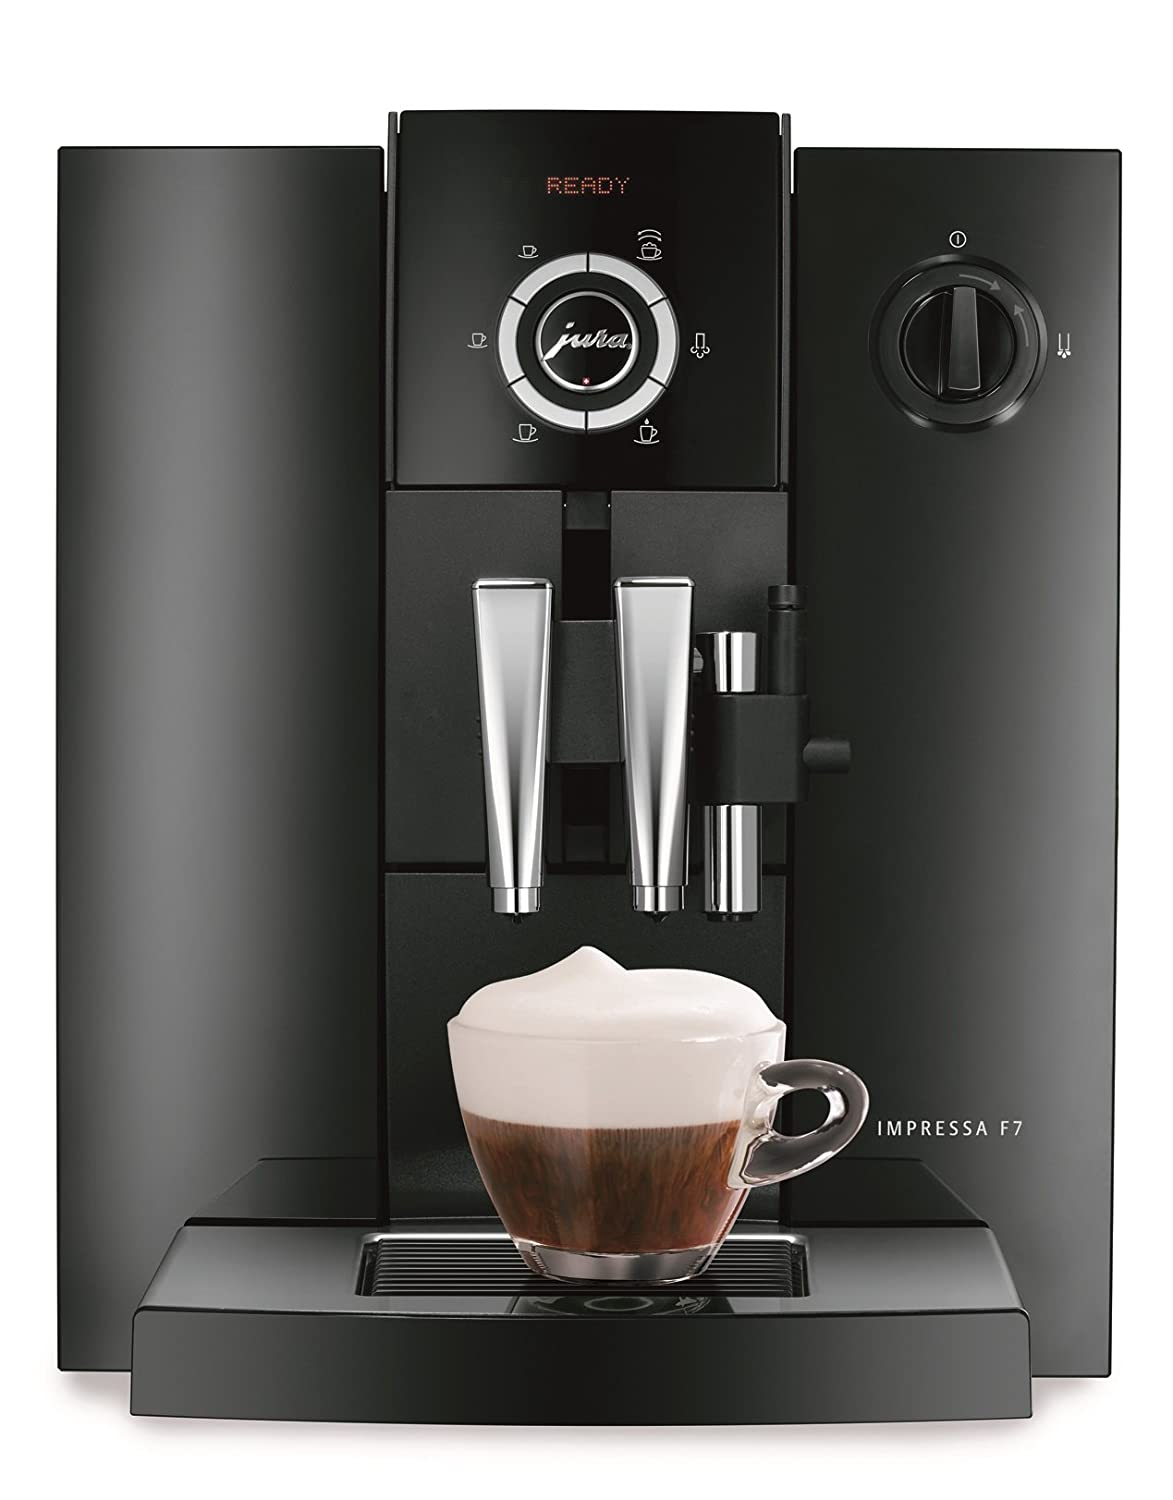 Top 10 Best Single Serve Coffee Maker (2020 Reviews & Buyer's Guide) 10